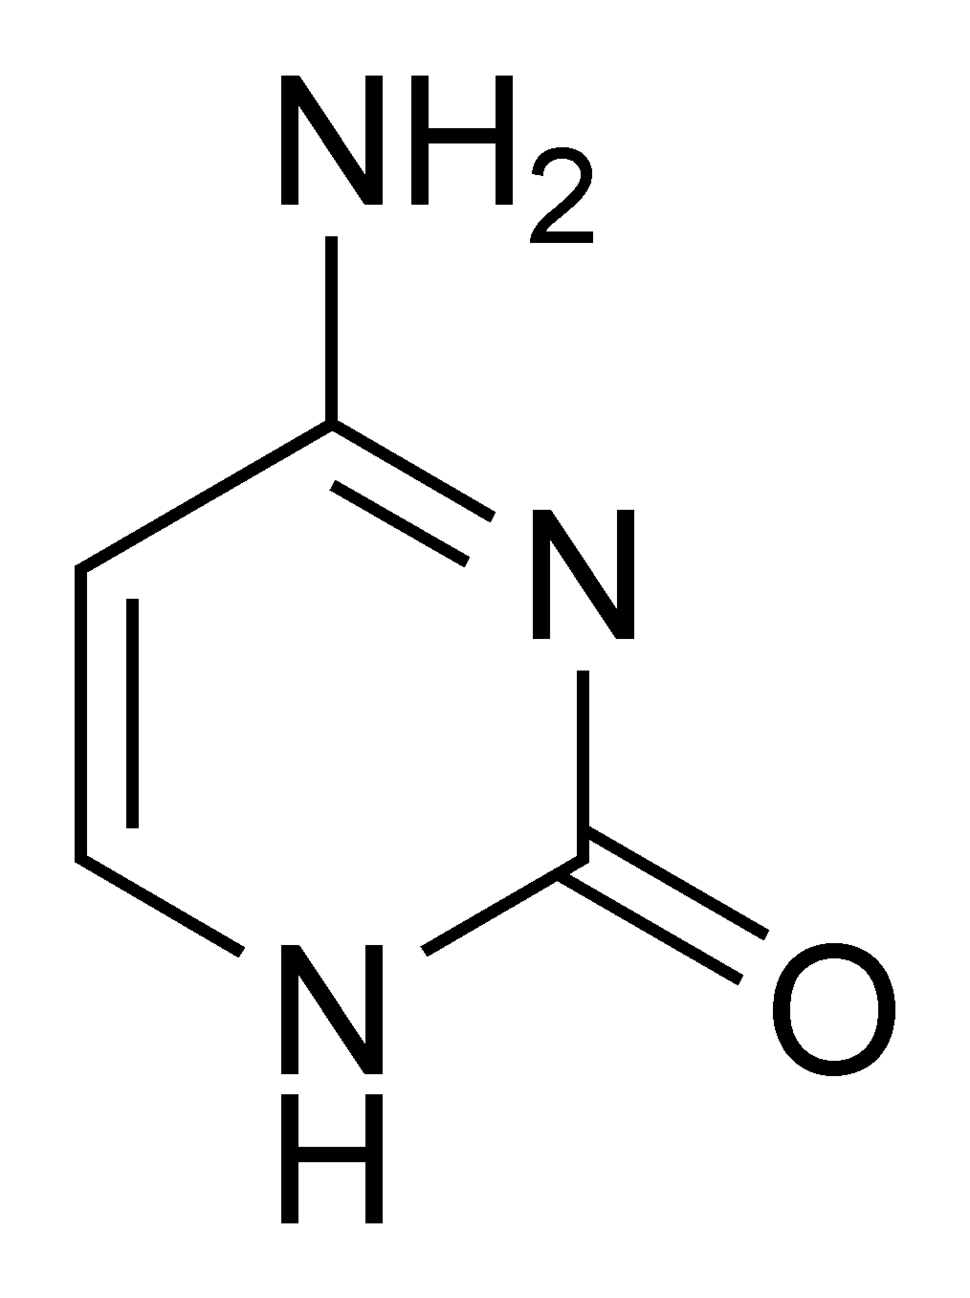 Cytosine chemical structure